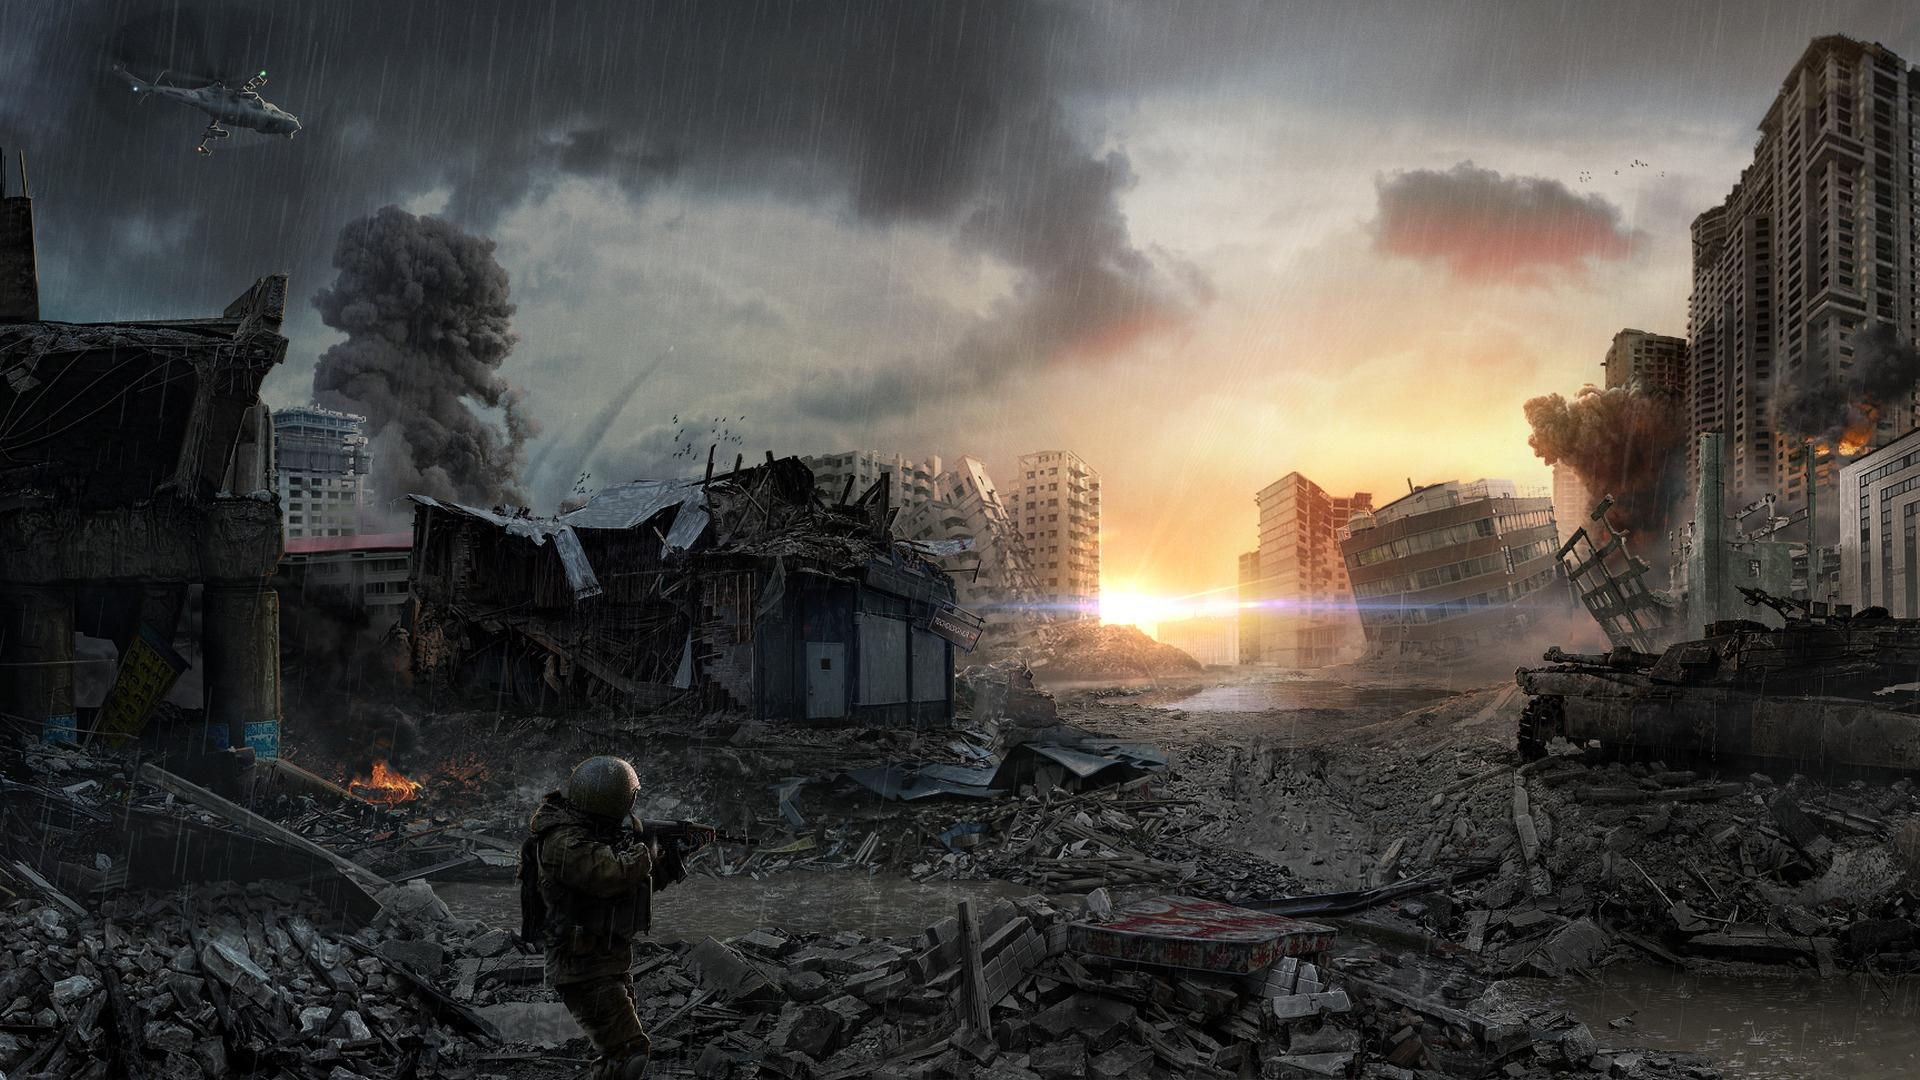 Post Apocalyptic Backgrounds, Compatible - PC, Mobile, Gadgets| 1920x1080 px